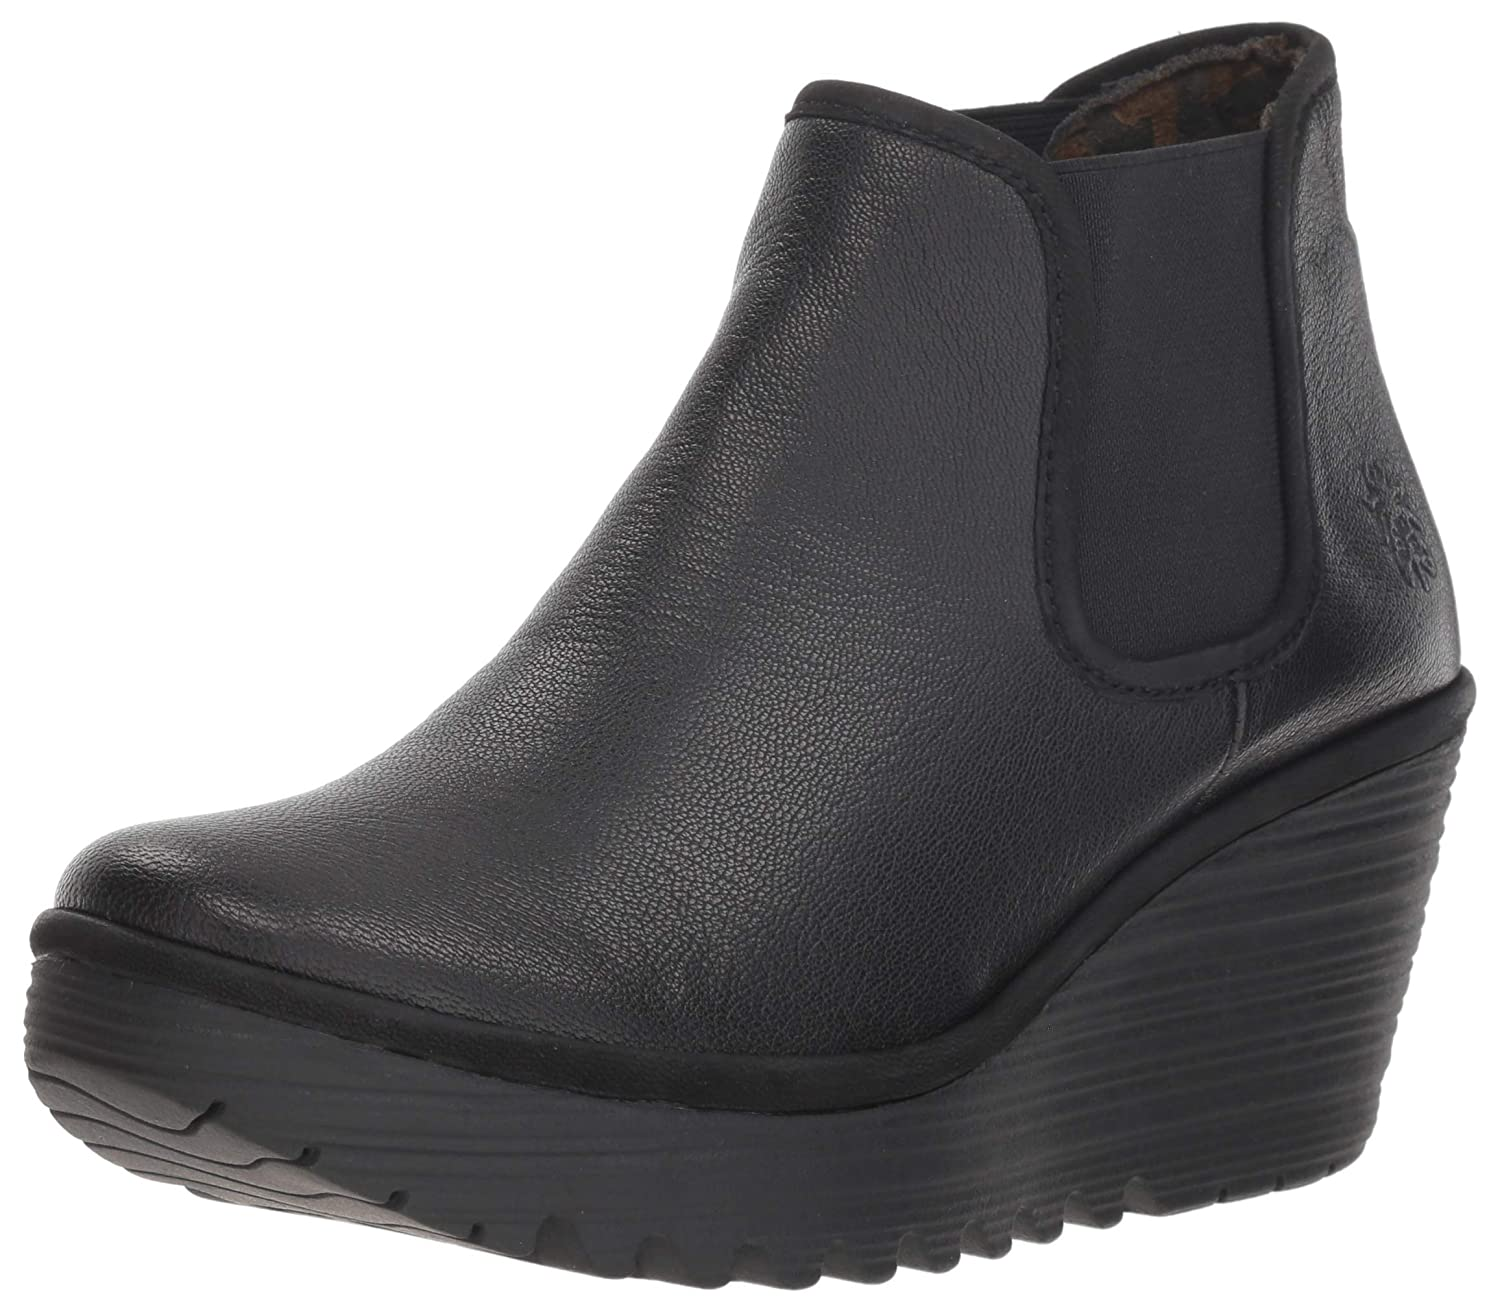 Fly London Stiefel Kurzschaft Damen Yat 2IeWEbDYH9